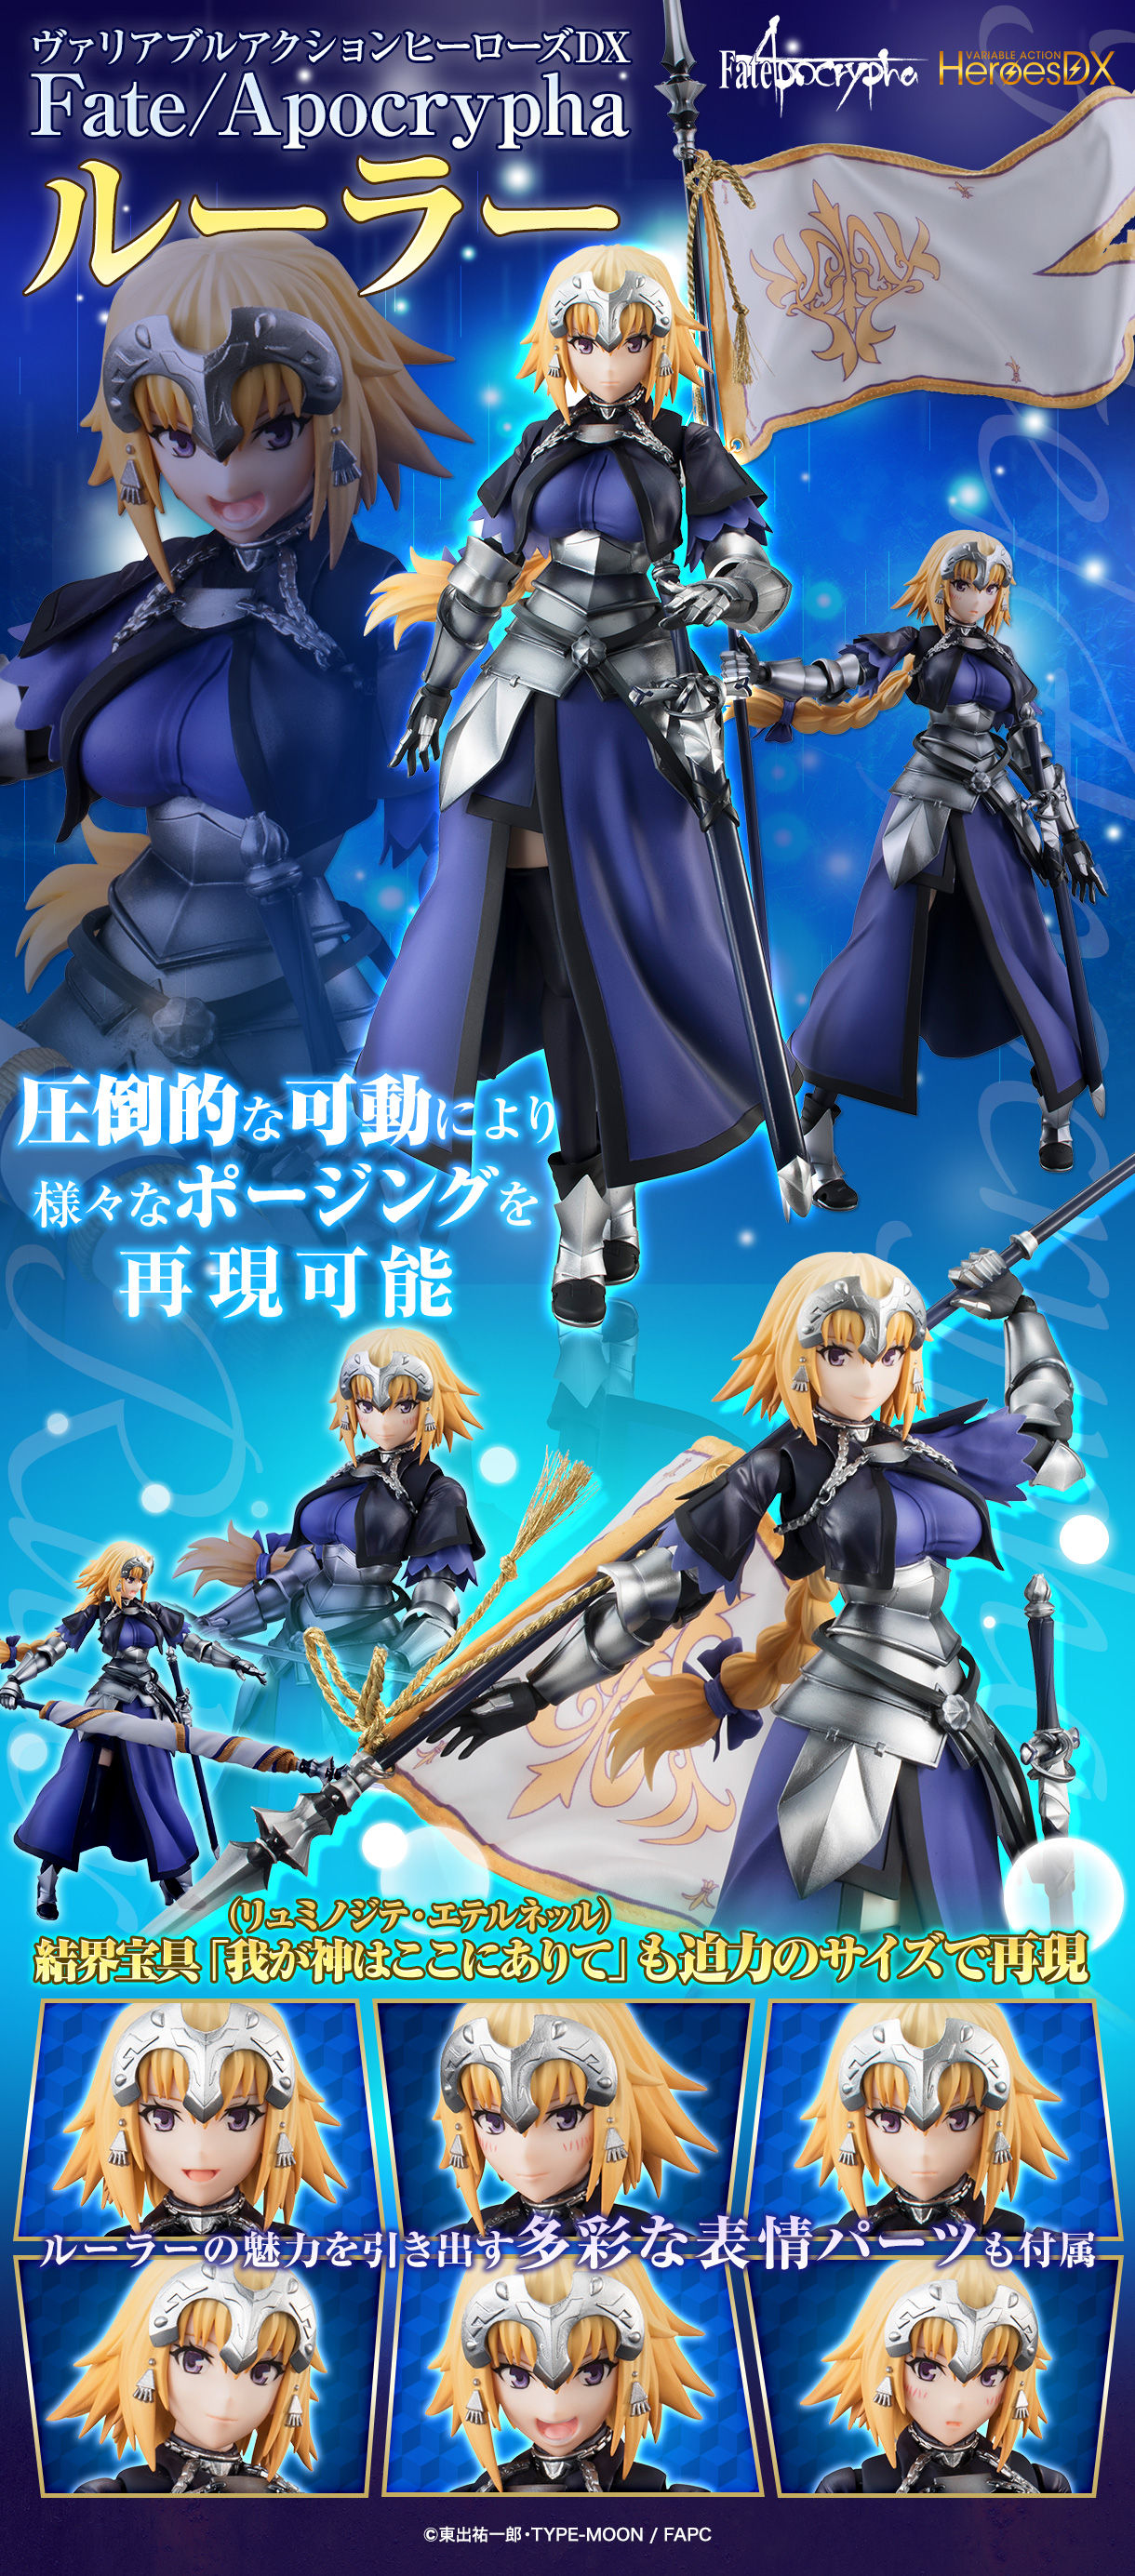 VARIABLE ACTION HEROES DX (FATE/APOCRYPHA) RULER